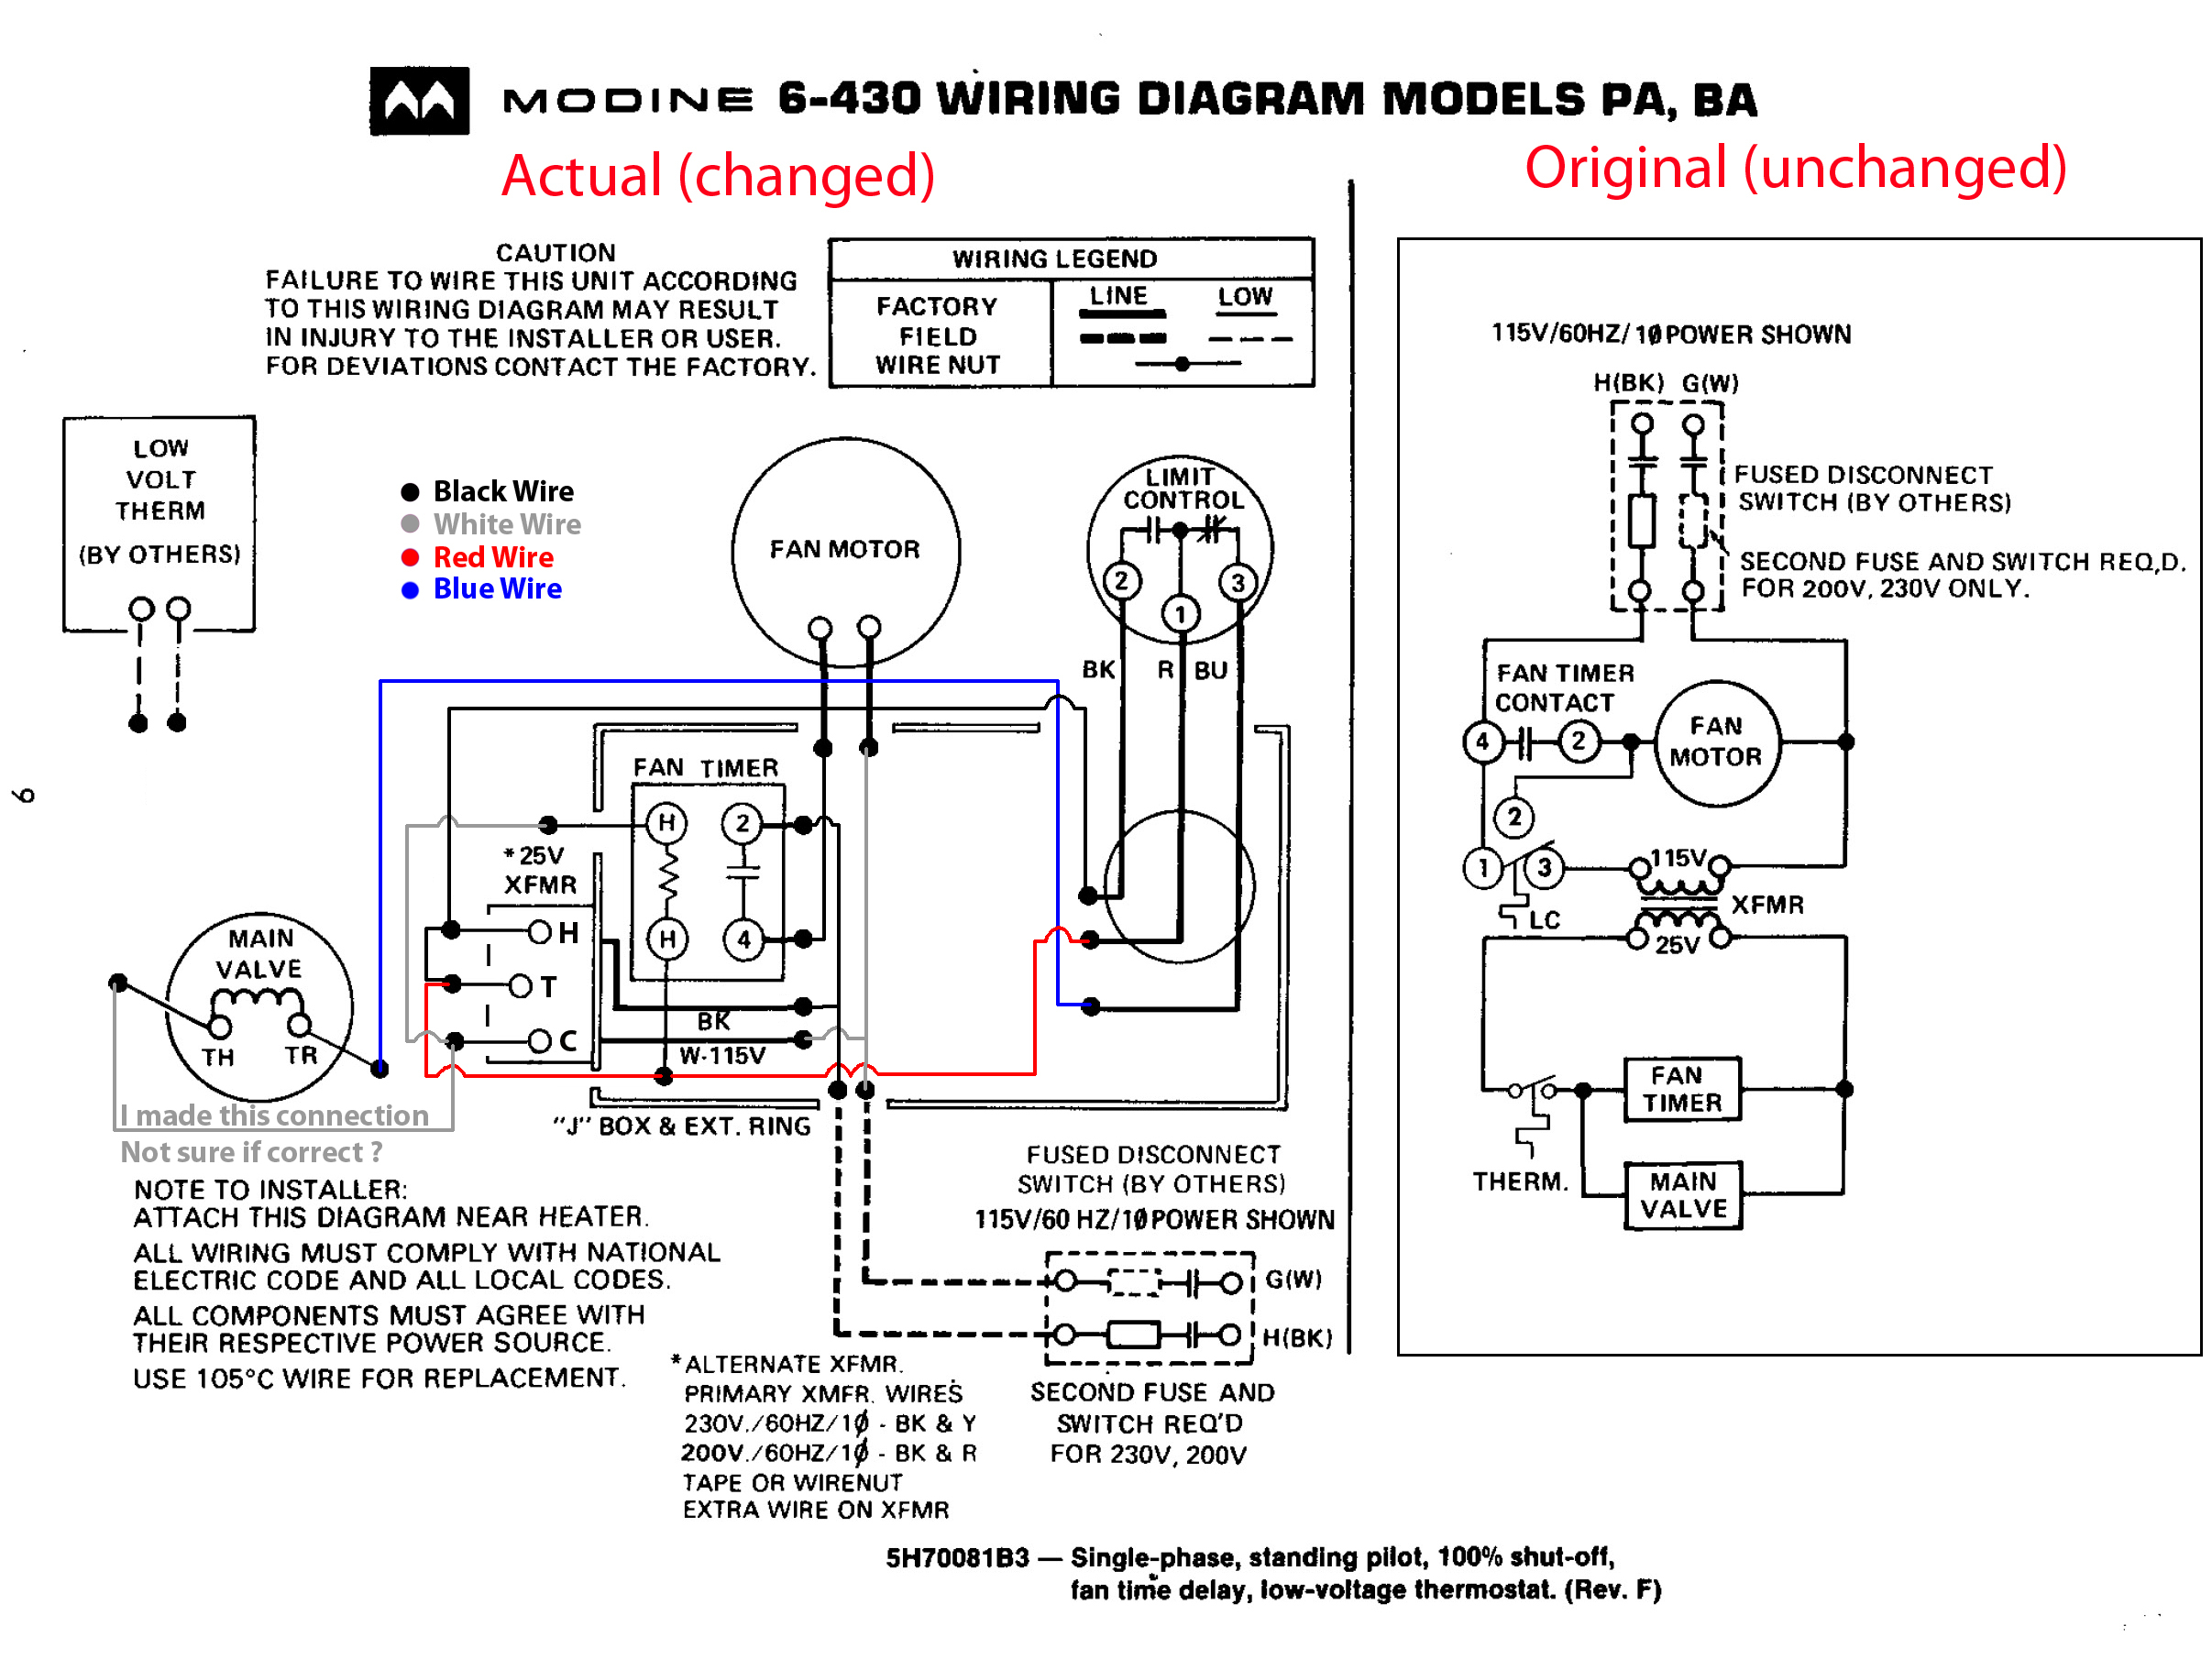 modine heater wiring diagram sample wiring diagram sample modine heater wiring diagram modine heater wiring diagram download modine gas heater wiring diagram new beautiful gas heater wiring download wiring diagram